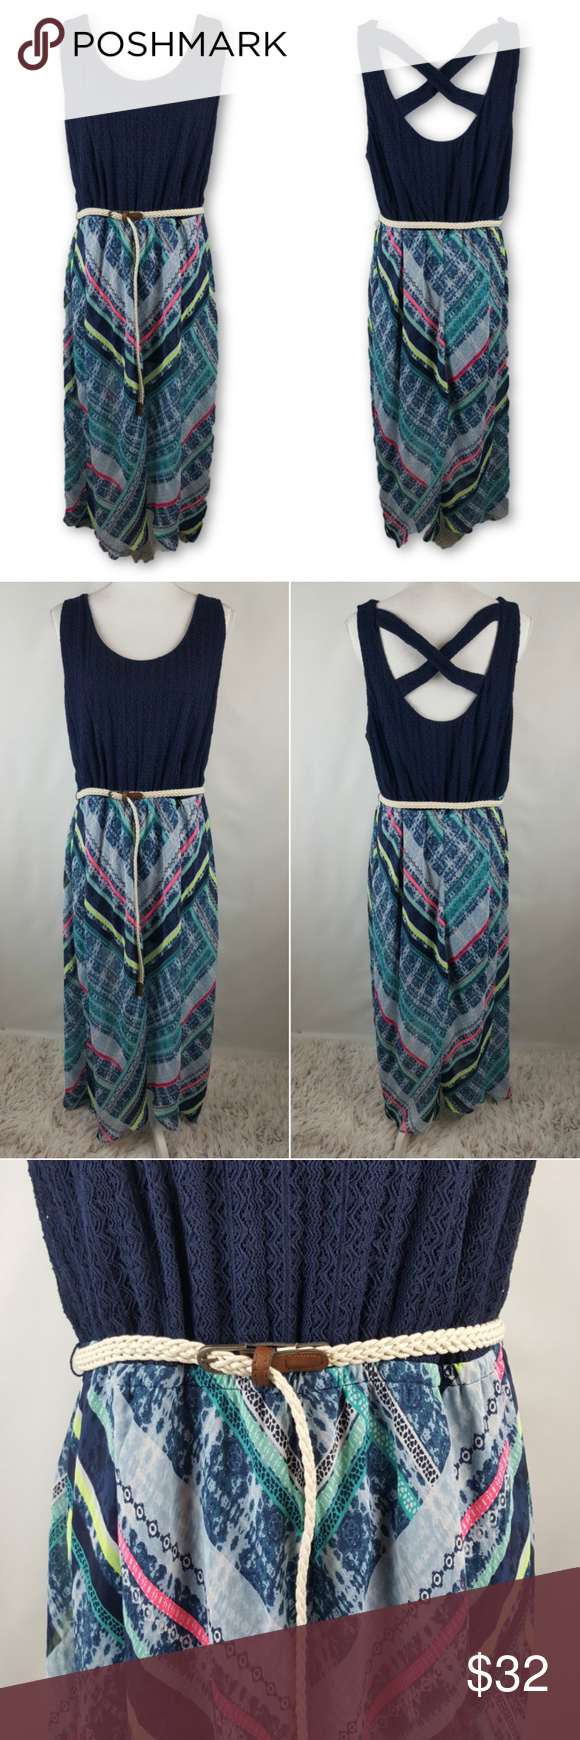 70593f290f7 Maurices Plus Size 3X Maxi Crochet Dress w  Belt Maurices Vanity Size 3 is  Equal to a Womens 3X or 24-26 Great Condition! No rips